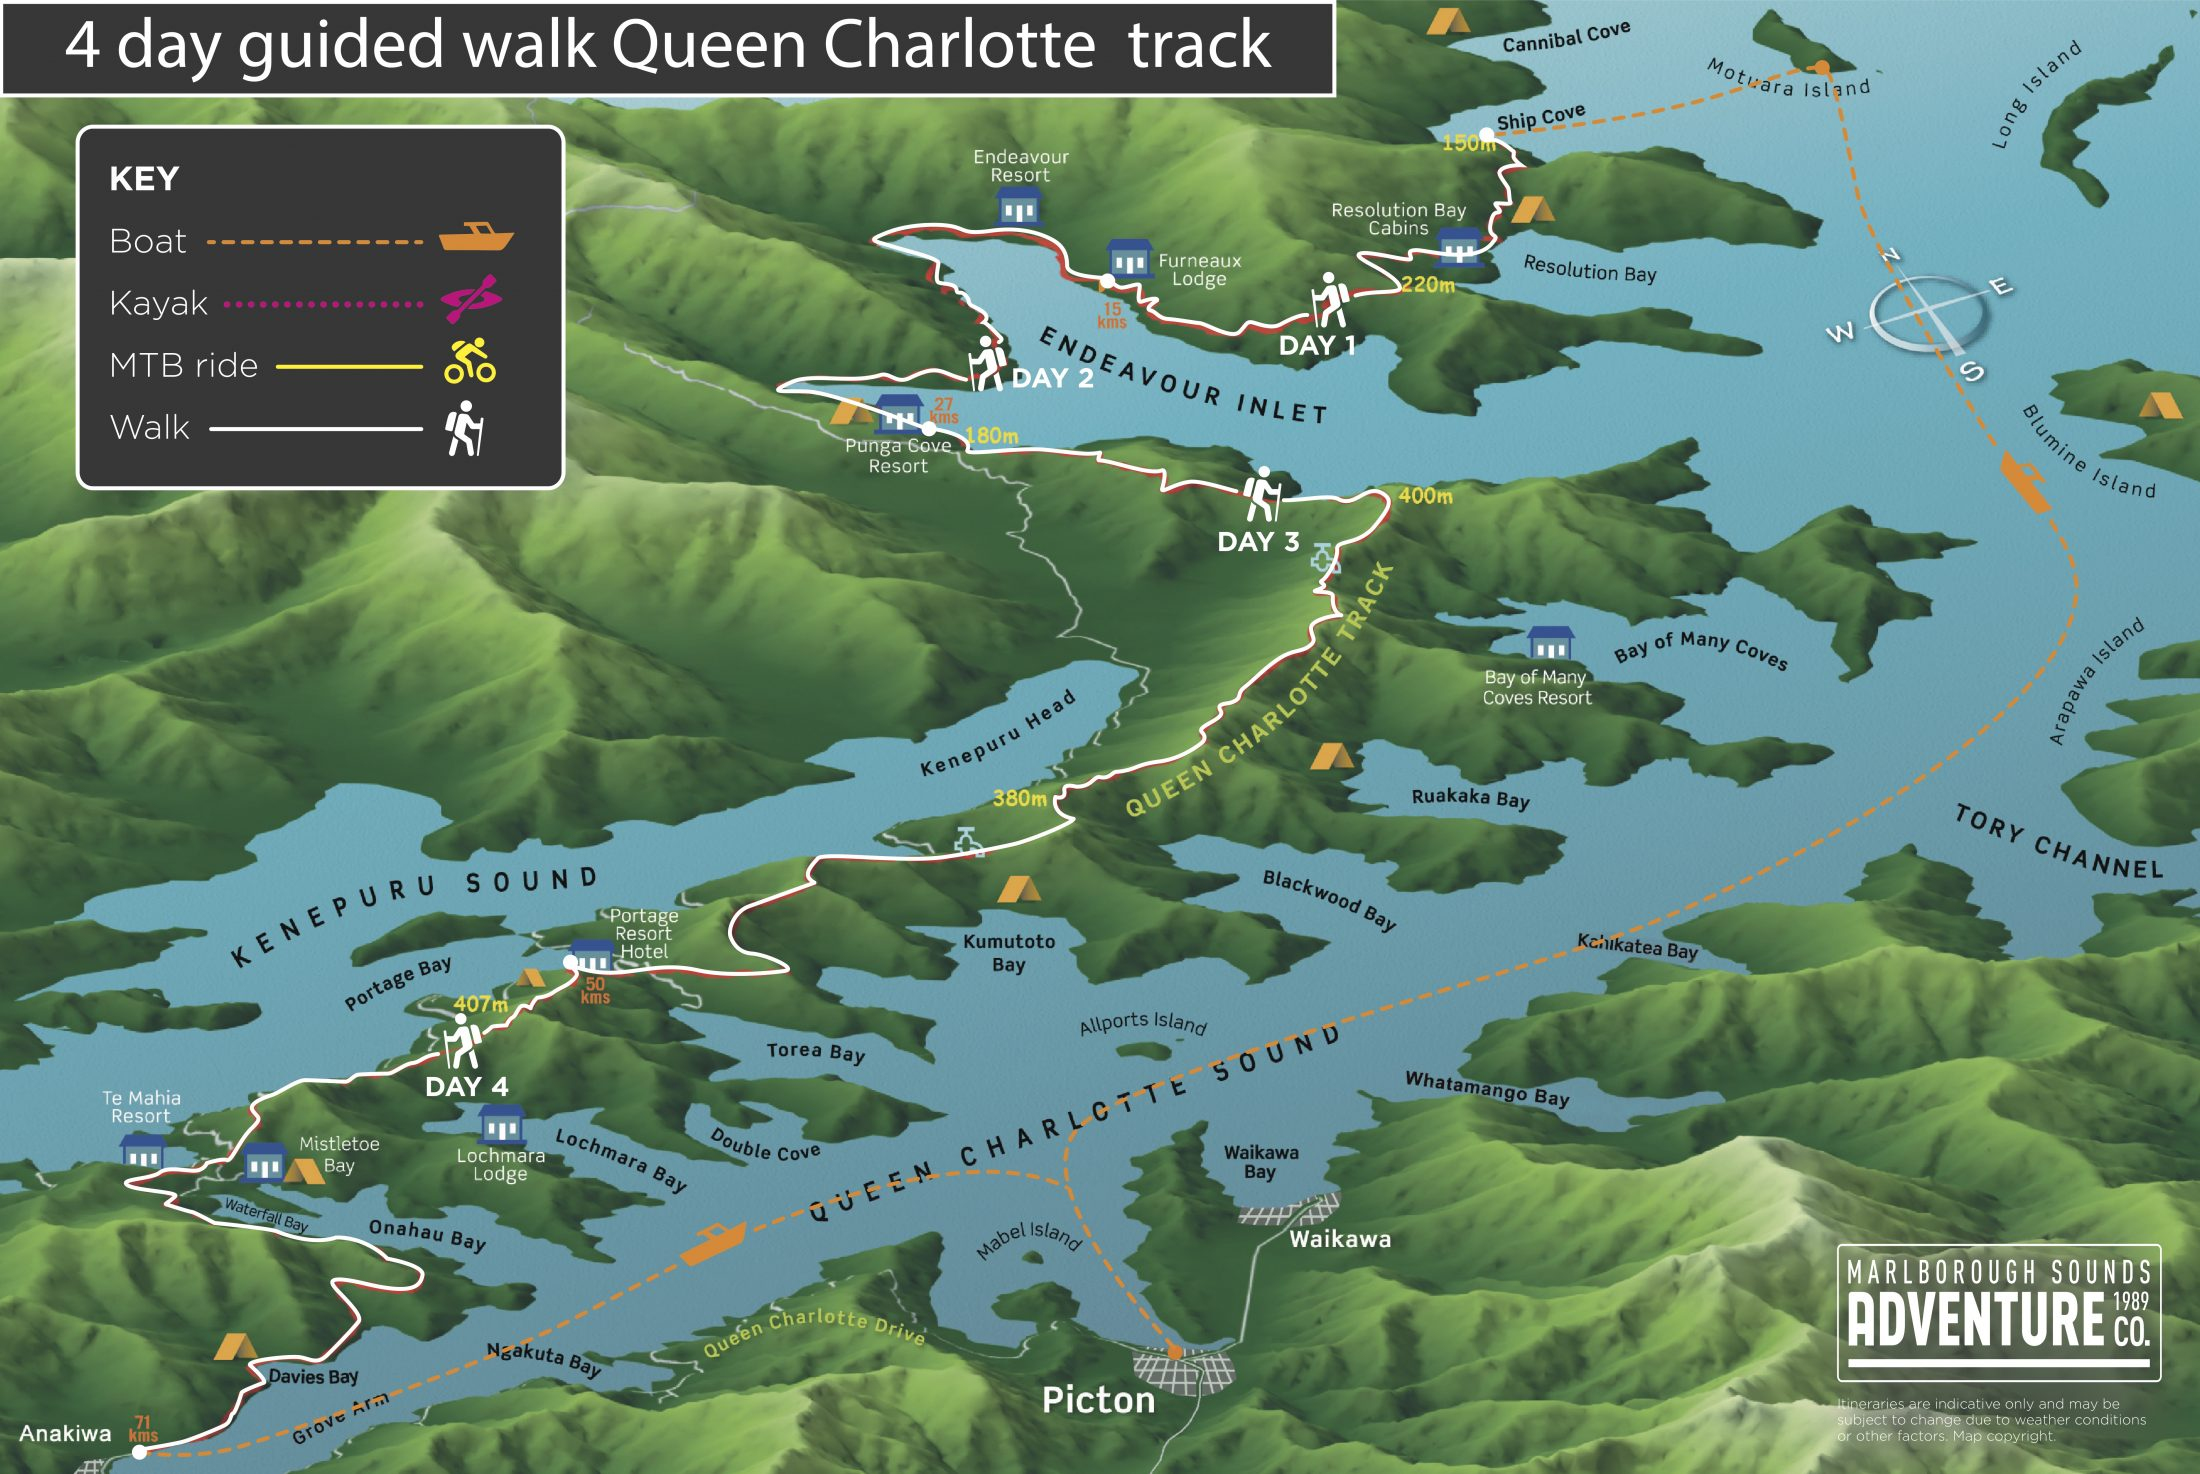 4 Day Guided Walk - Queen Charlotte Track - Marlborough Sounds Adventure